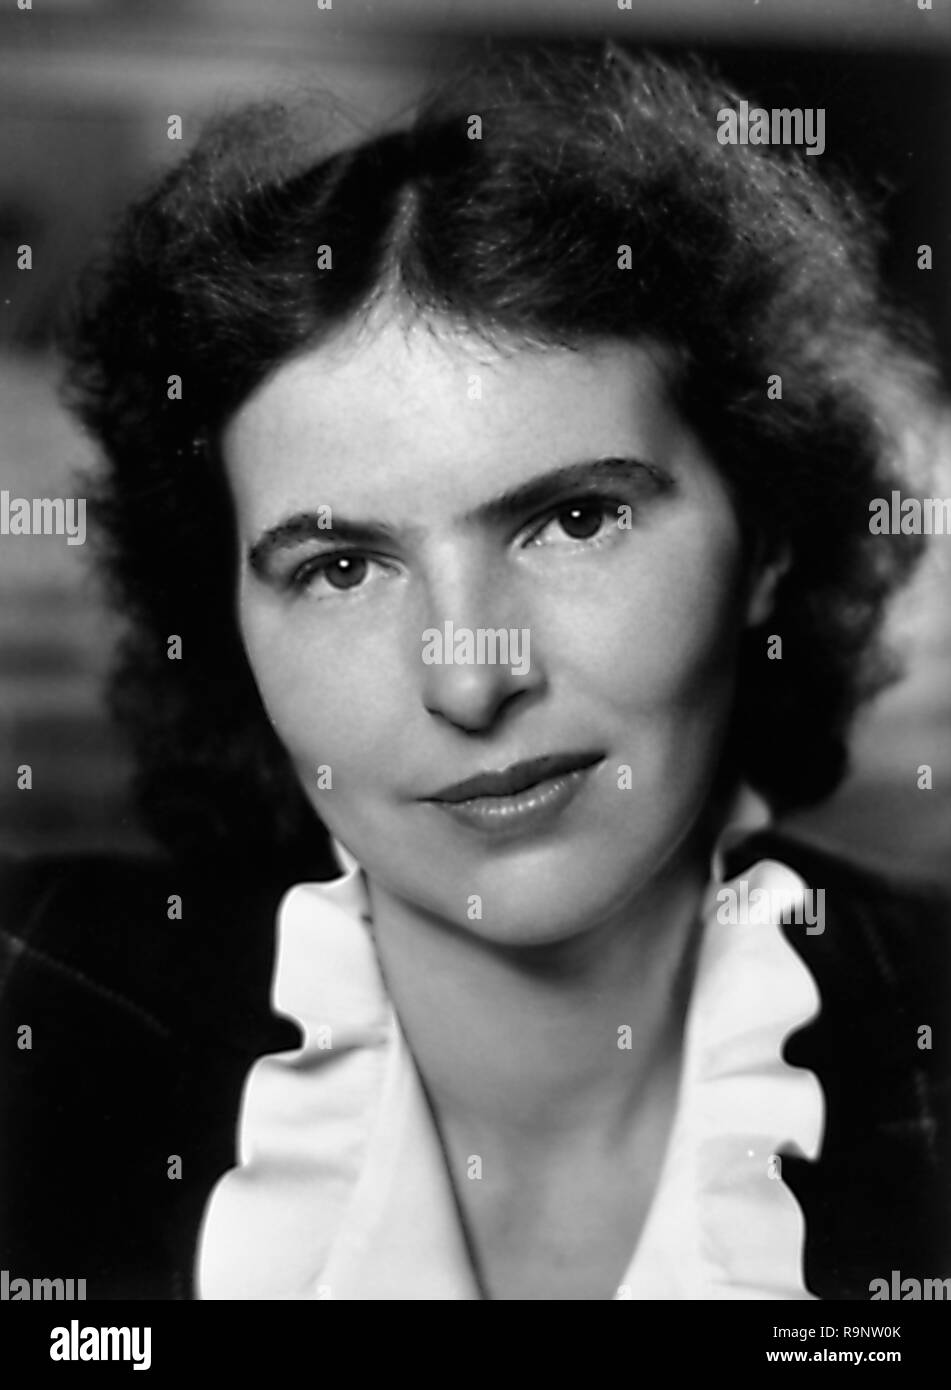 Black and white, headshot, portrait photograph, of American writer and photographic critic Nancy Wynne Newhall, wearing a ruffled collar, and facing the camera, with a slight smile on her face, photographed in New York, circa 1943 by the German-American portrait photographer Lotte Jacobi (1896-1990), 1943. () - Stock Image